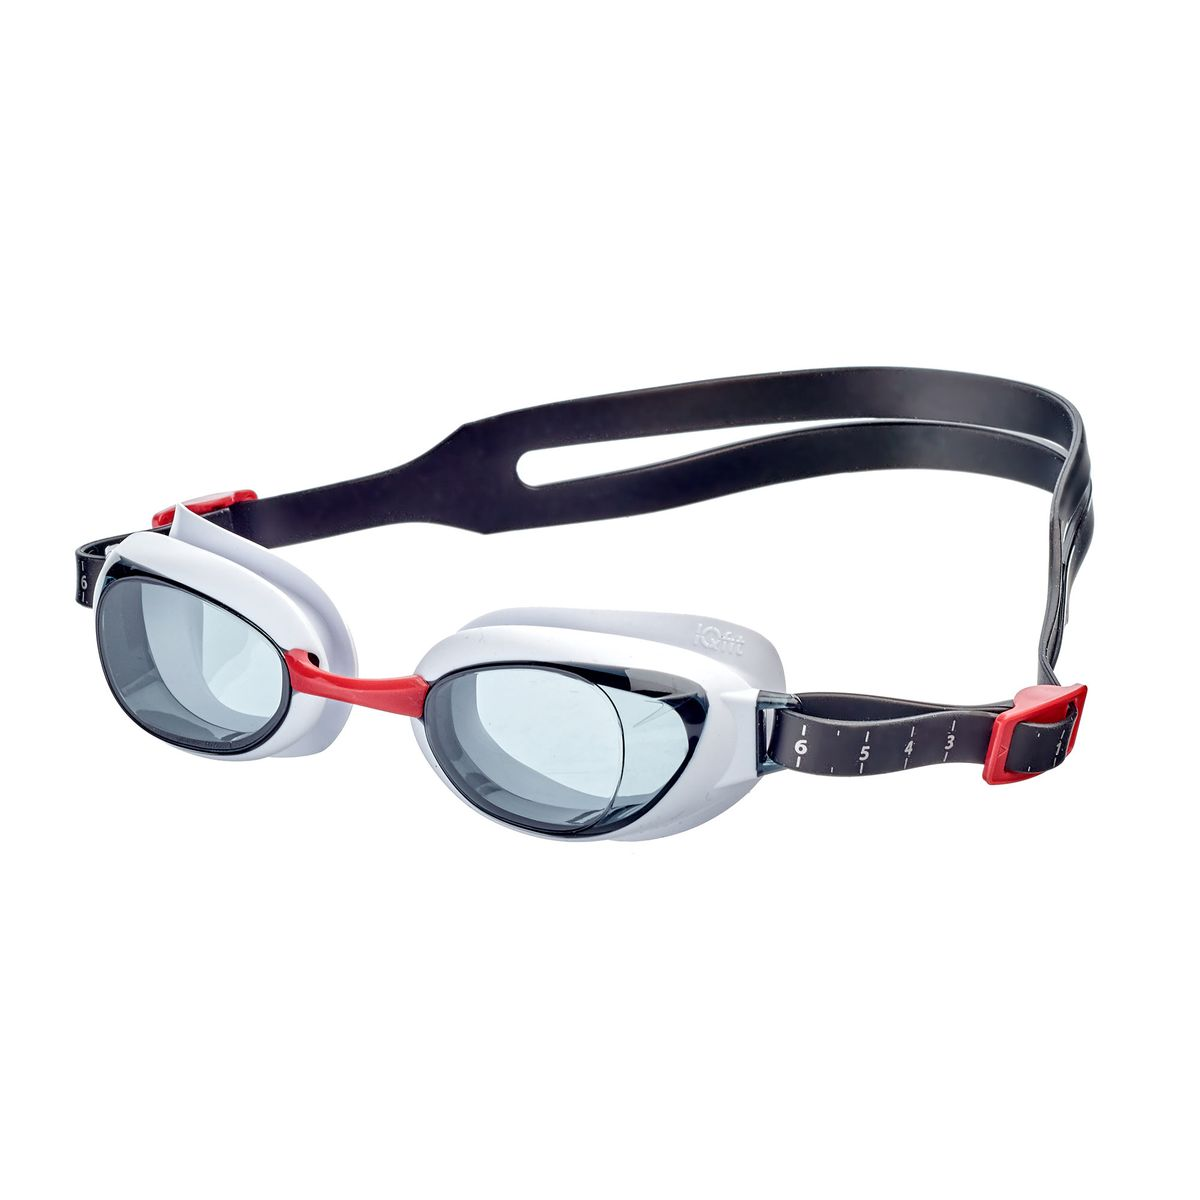 Aquapure swimming goggles